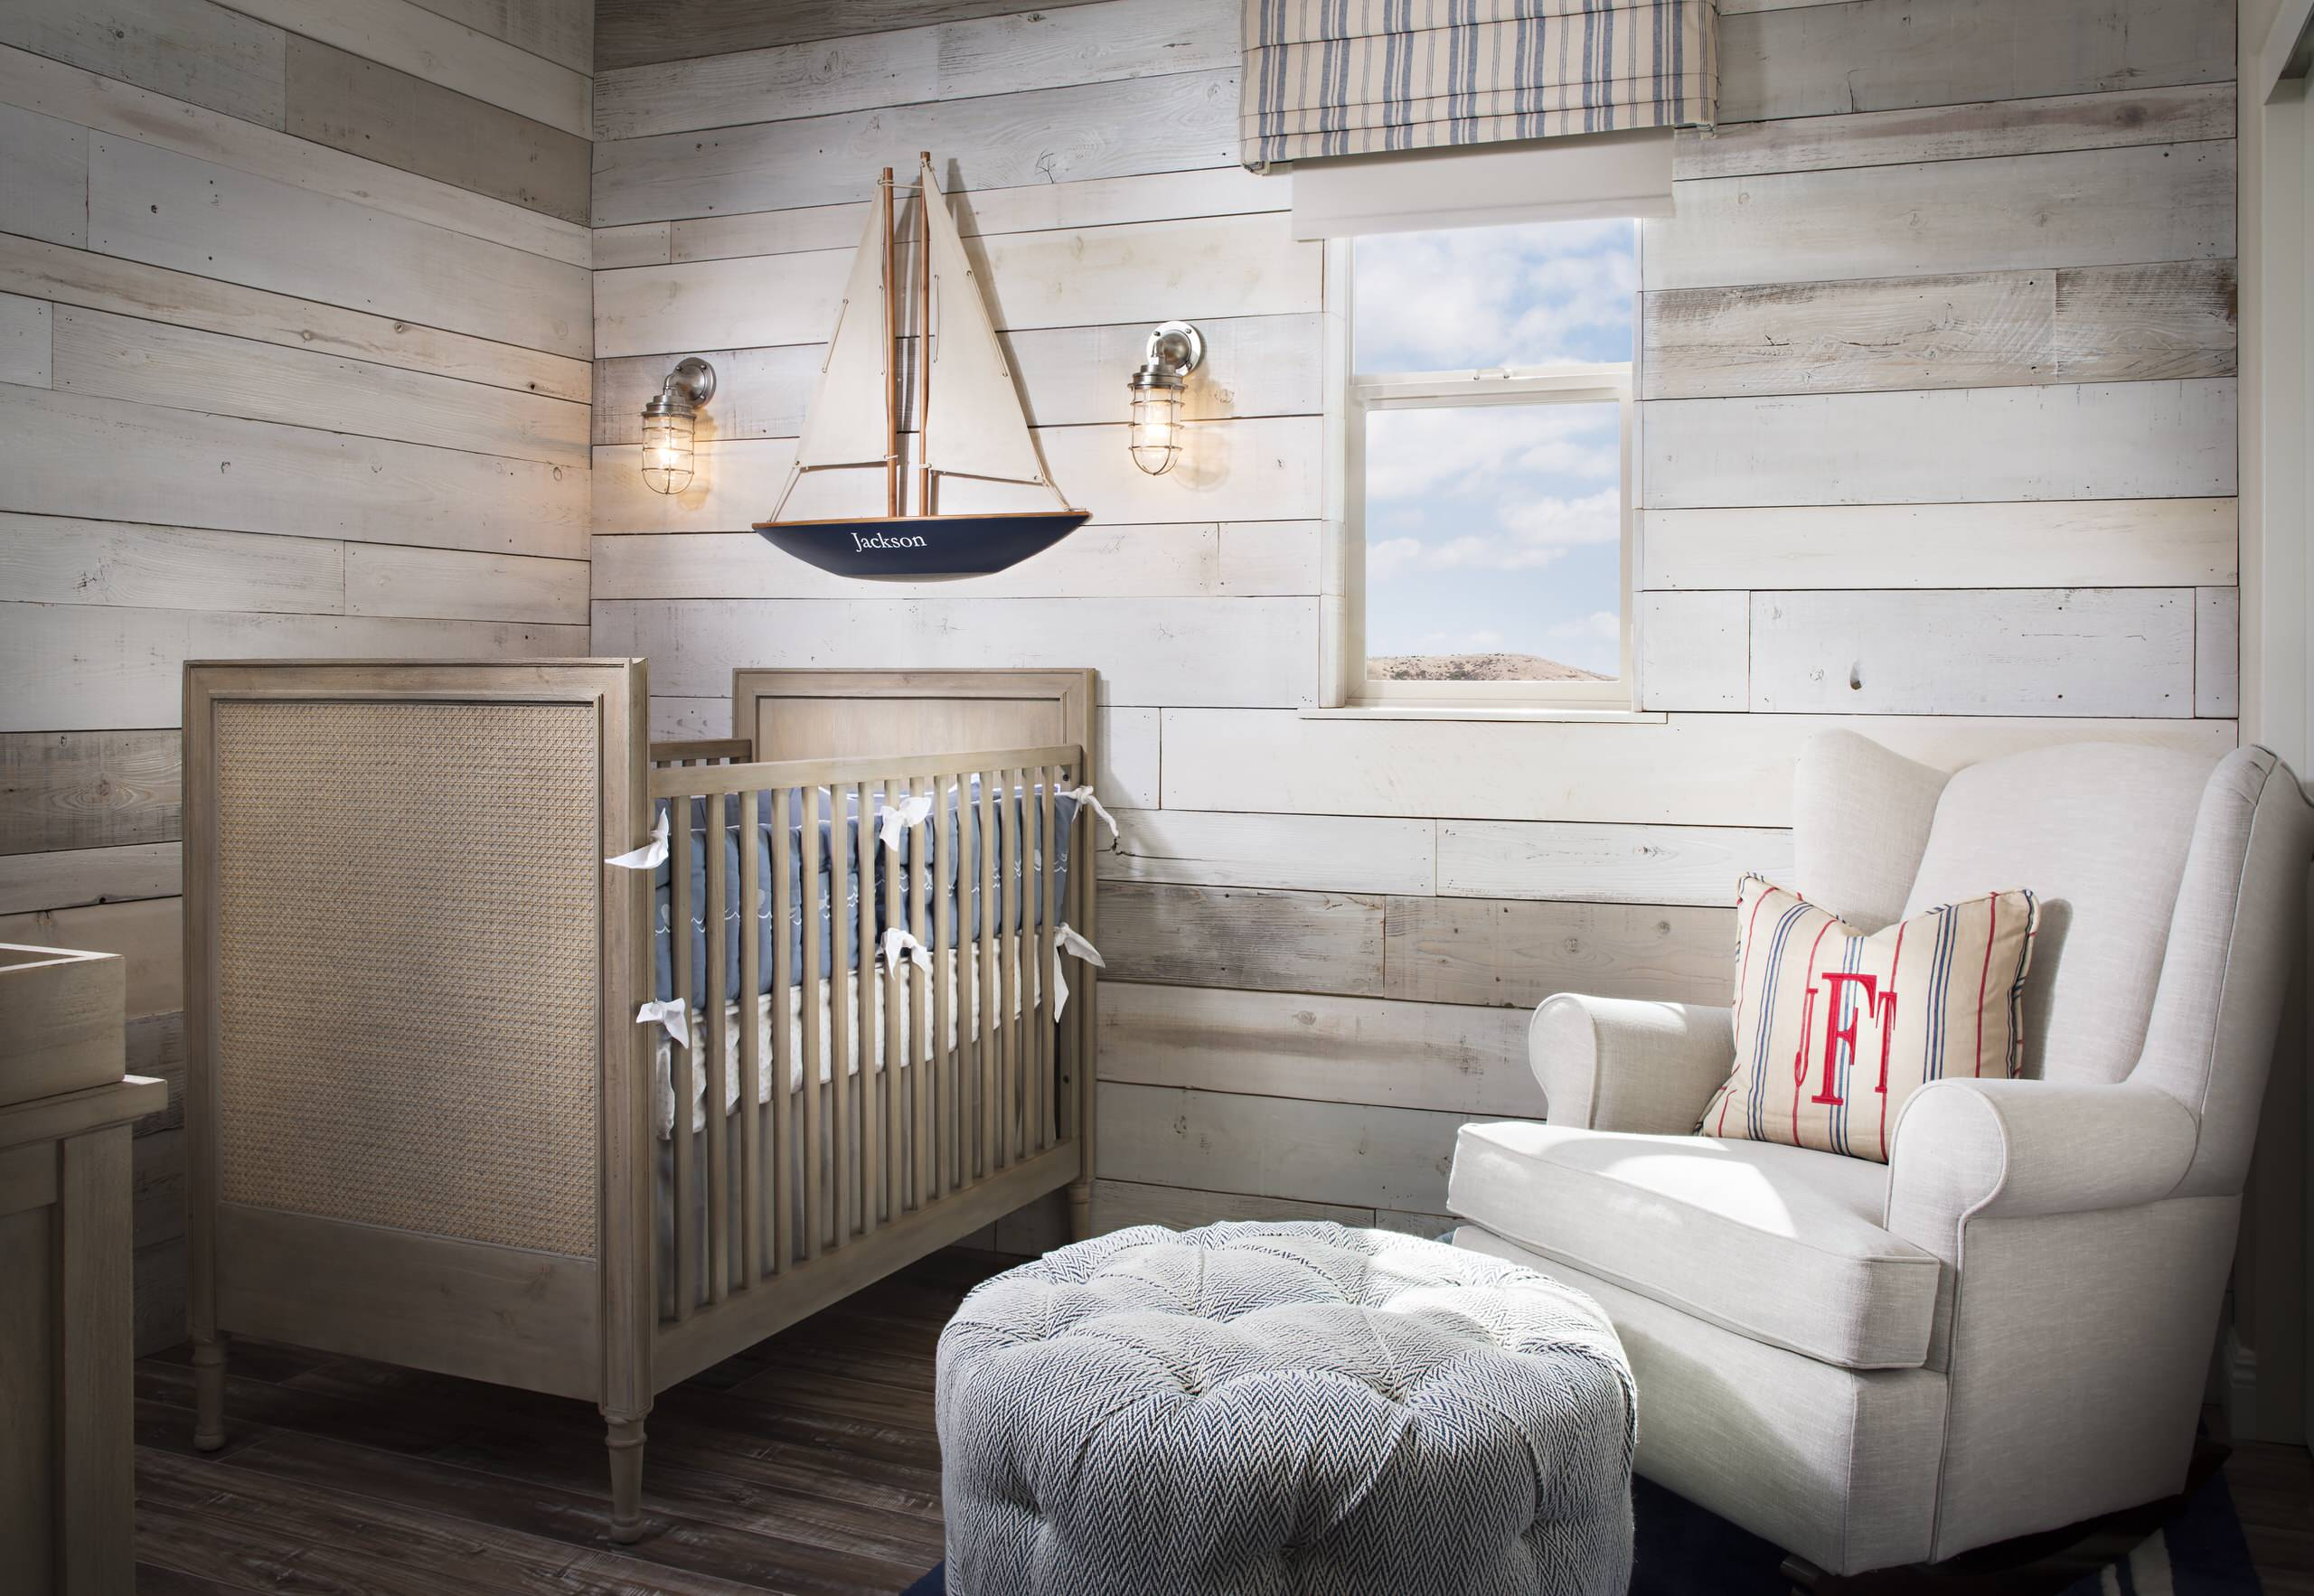 75 Beautiful Small Nursery Pictures Ideas October 2020 Houzz